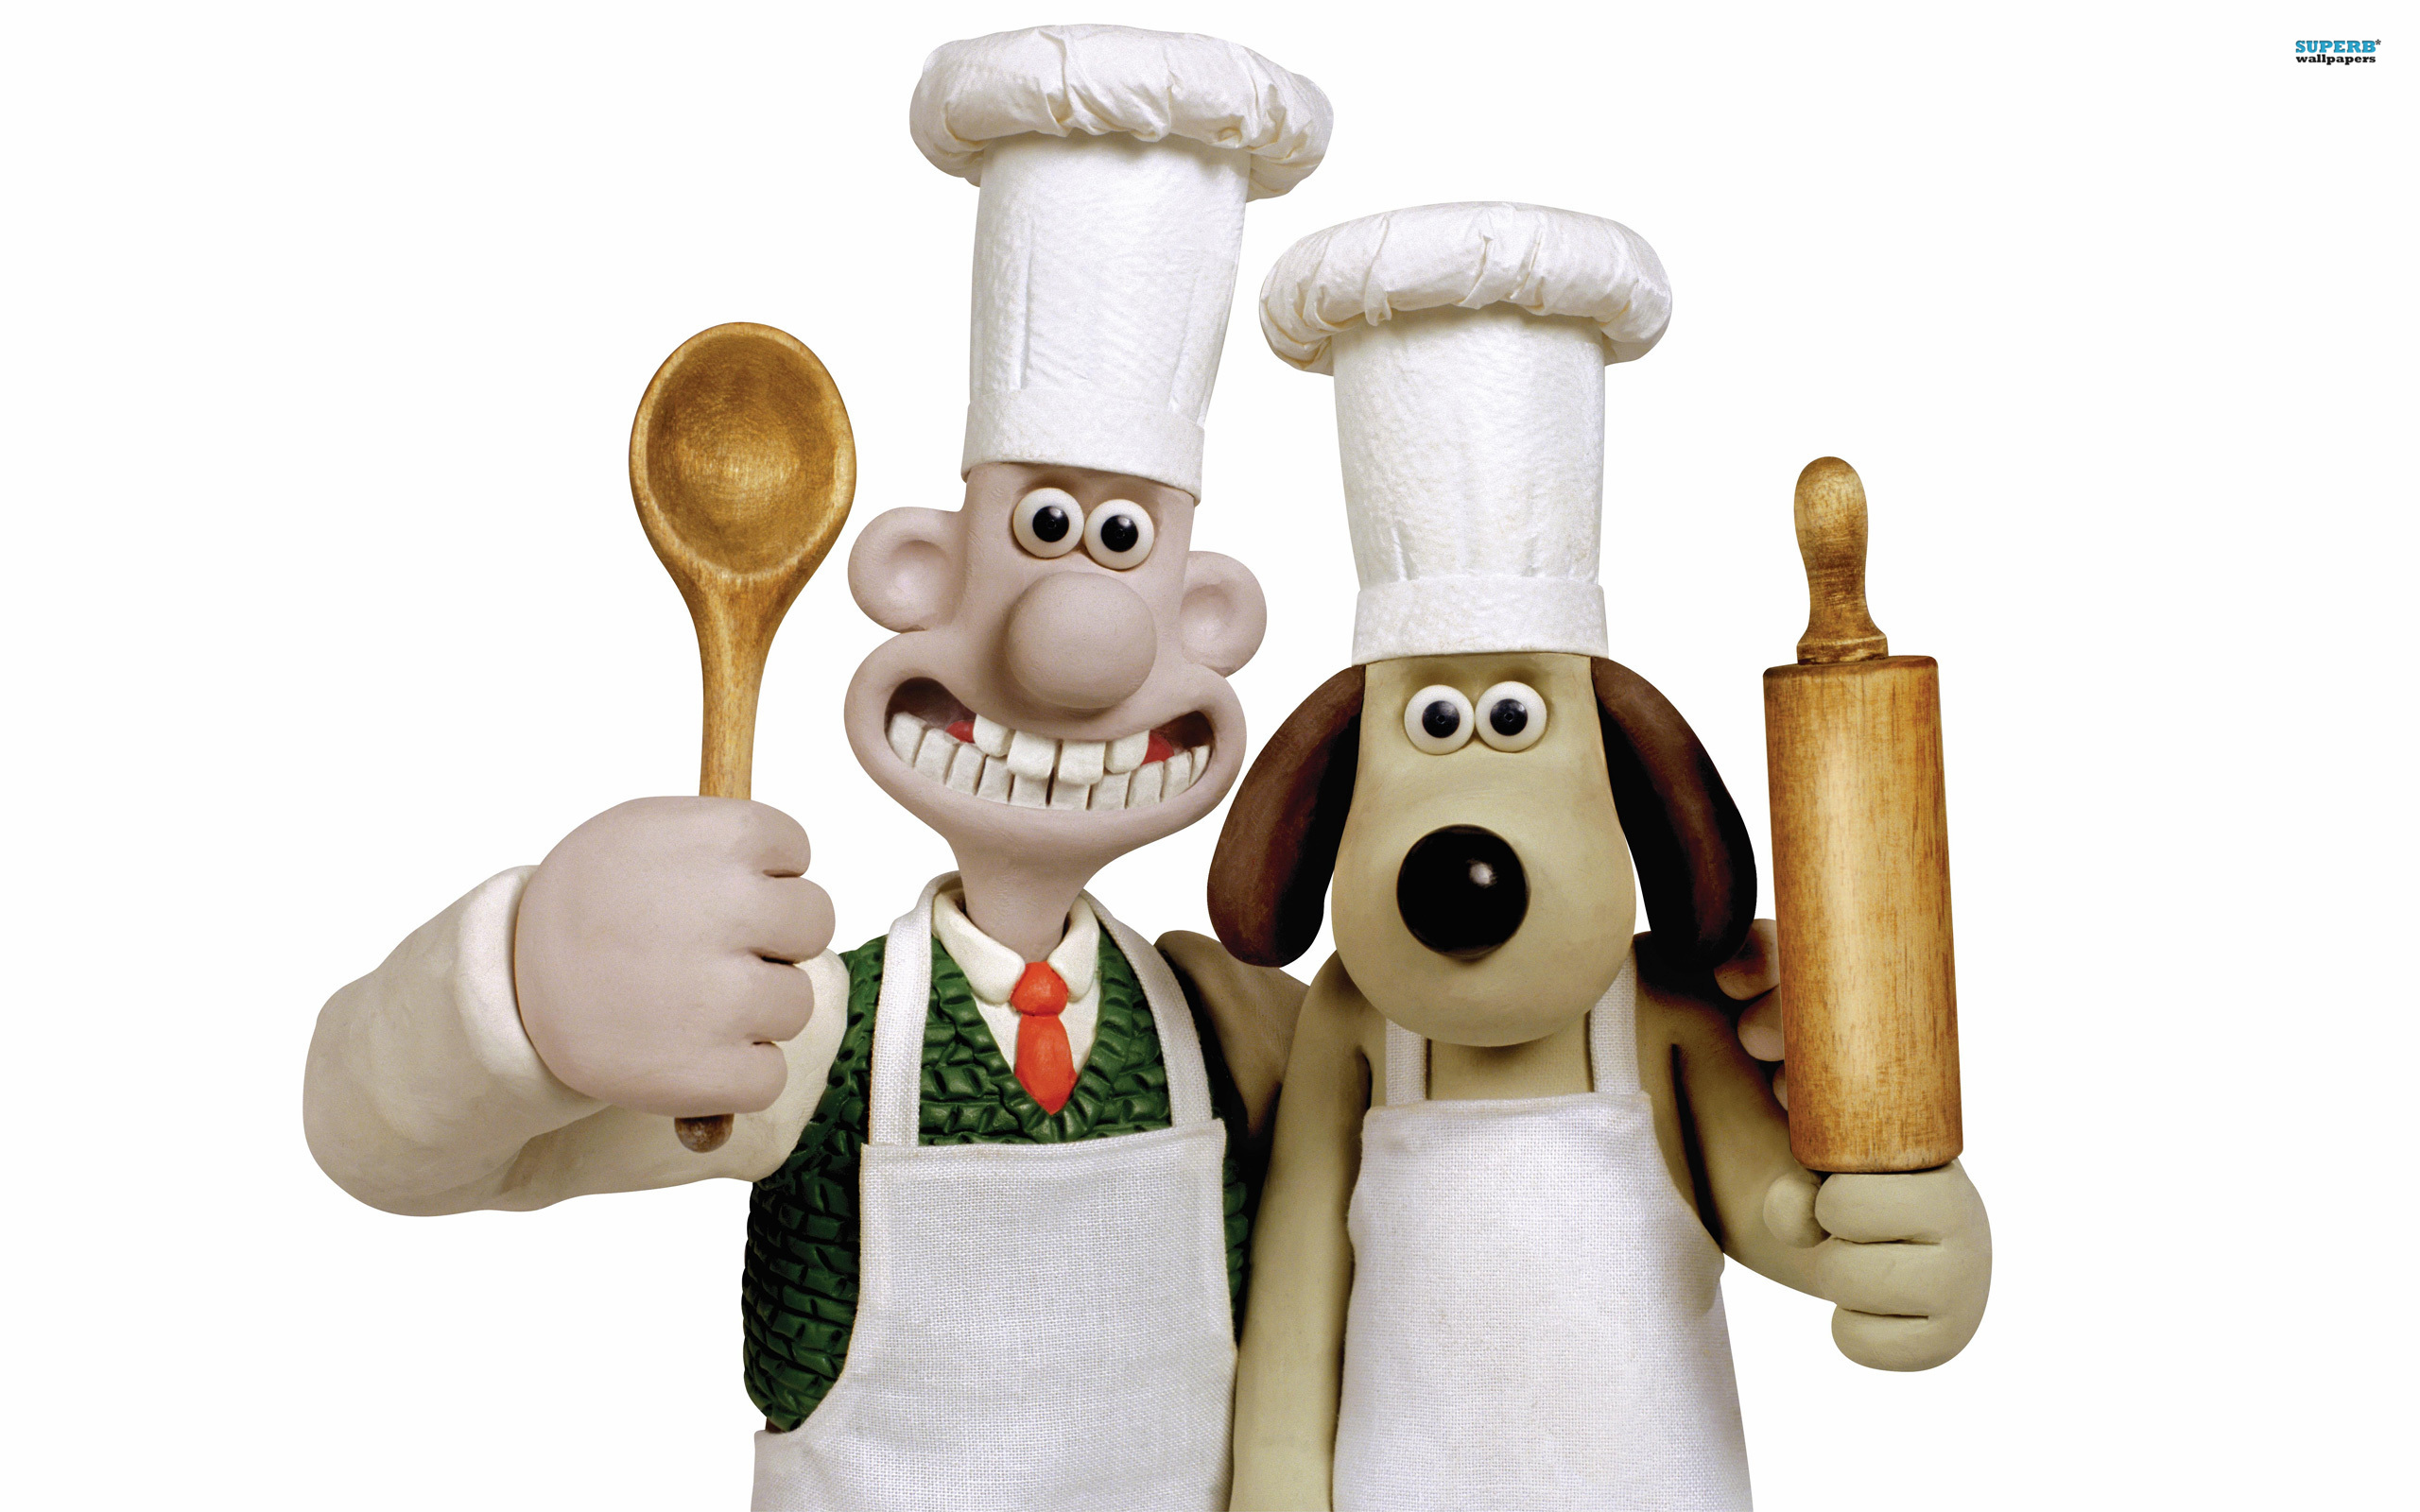 Wallace & Gromit Backgrounds, Compatible - PC, Mobile, Gadgets| 2560x1600 px